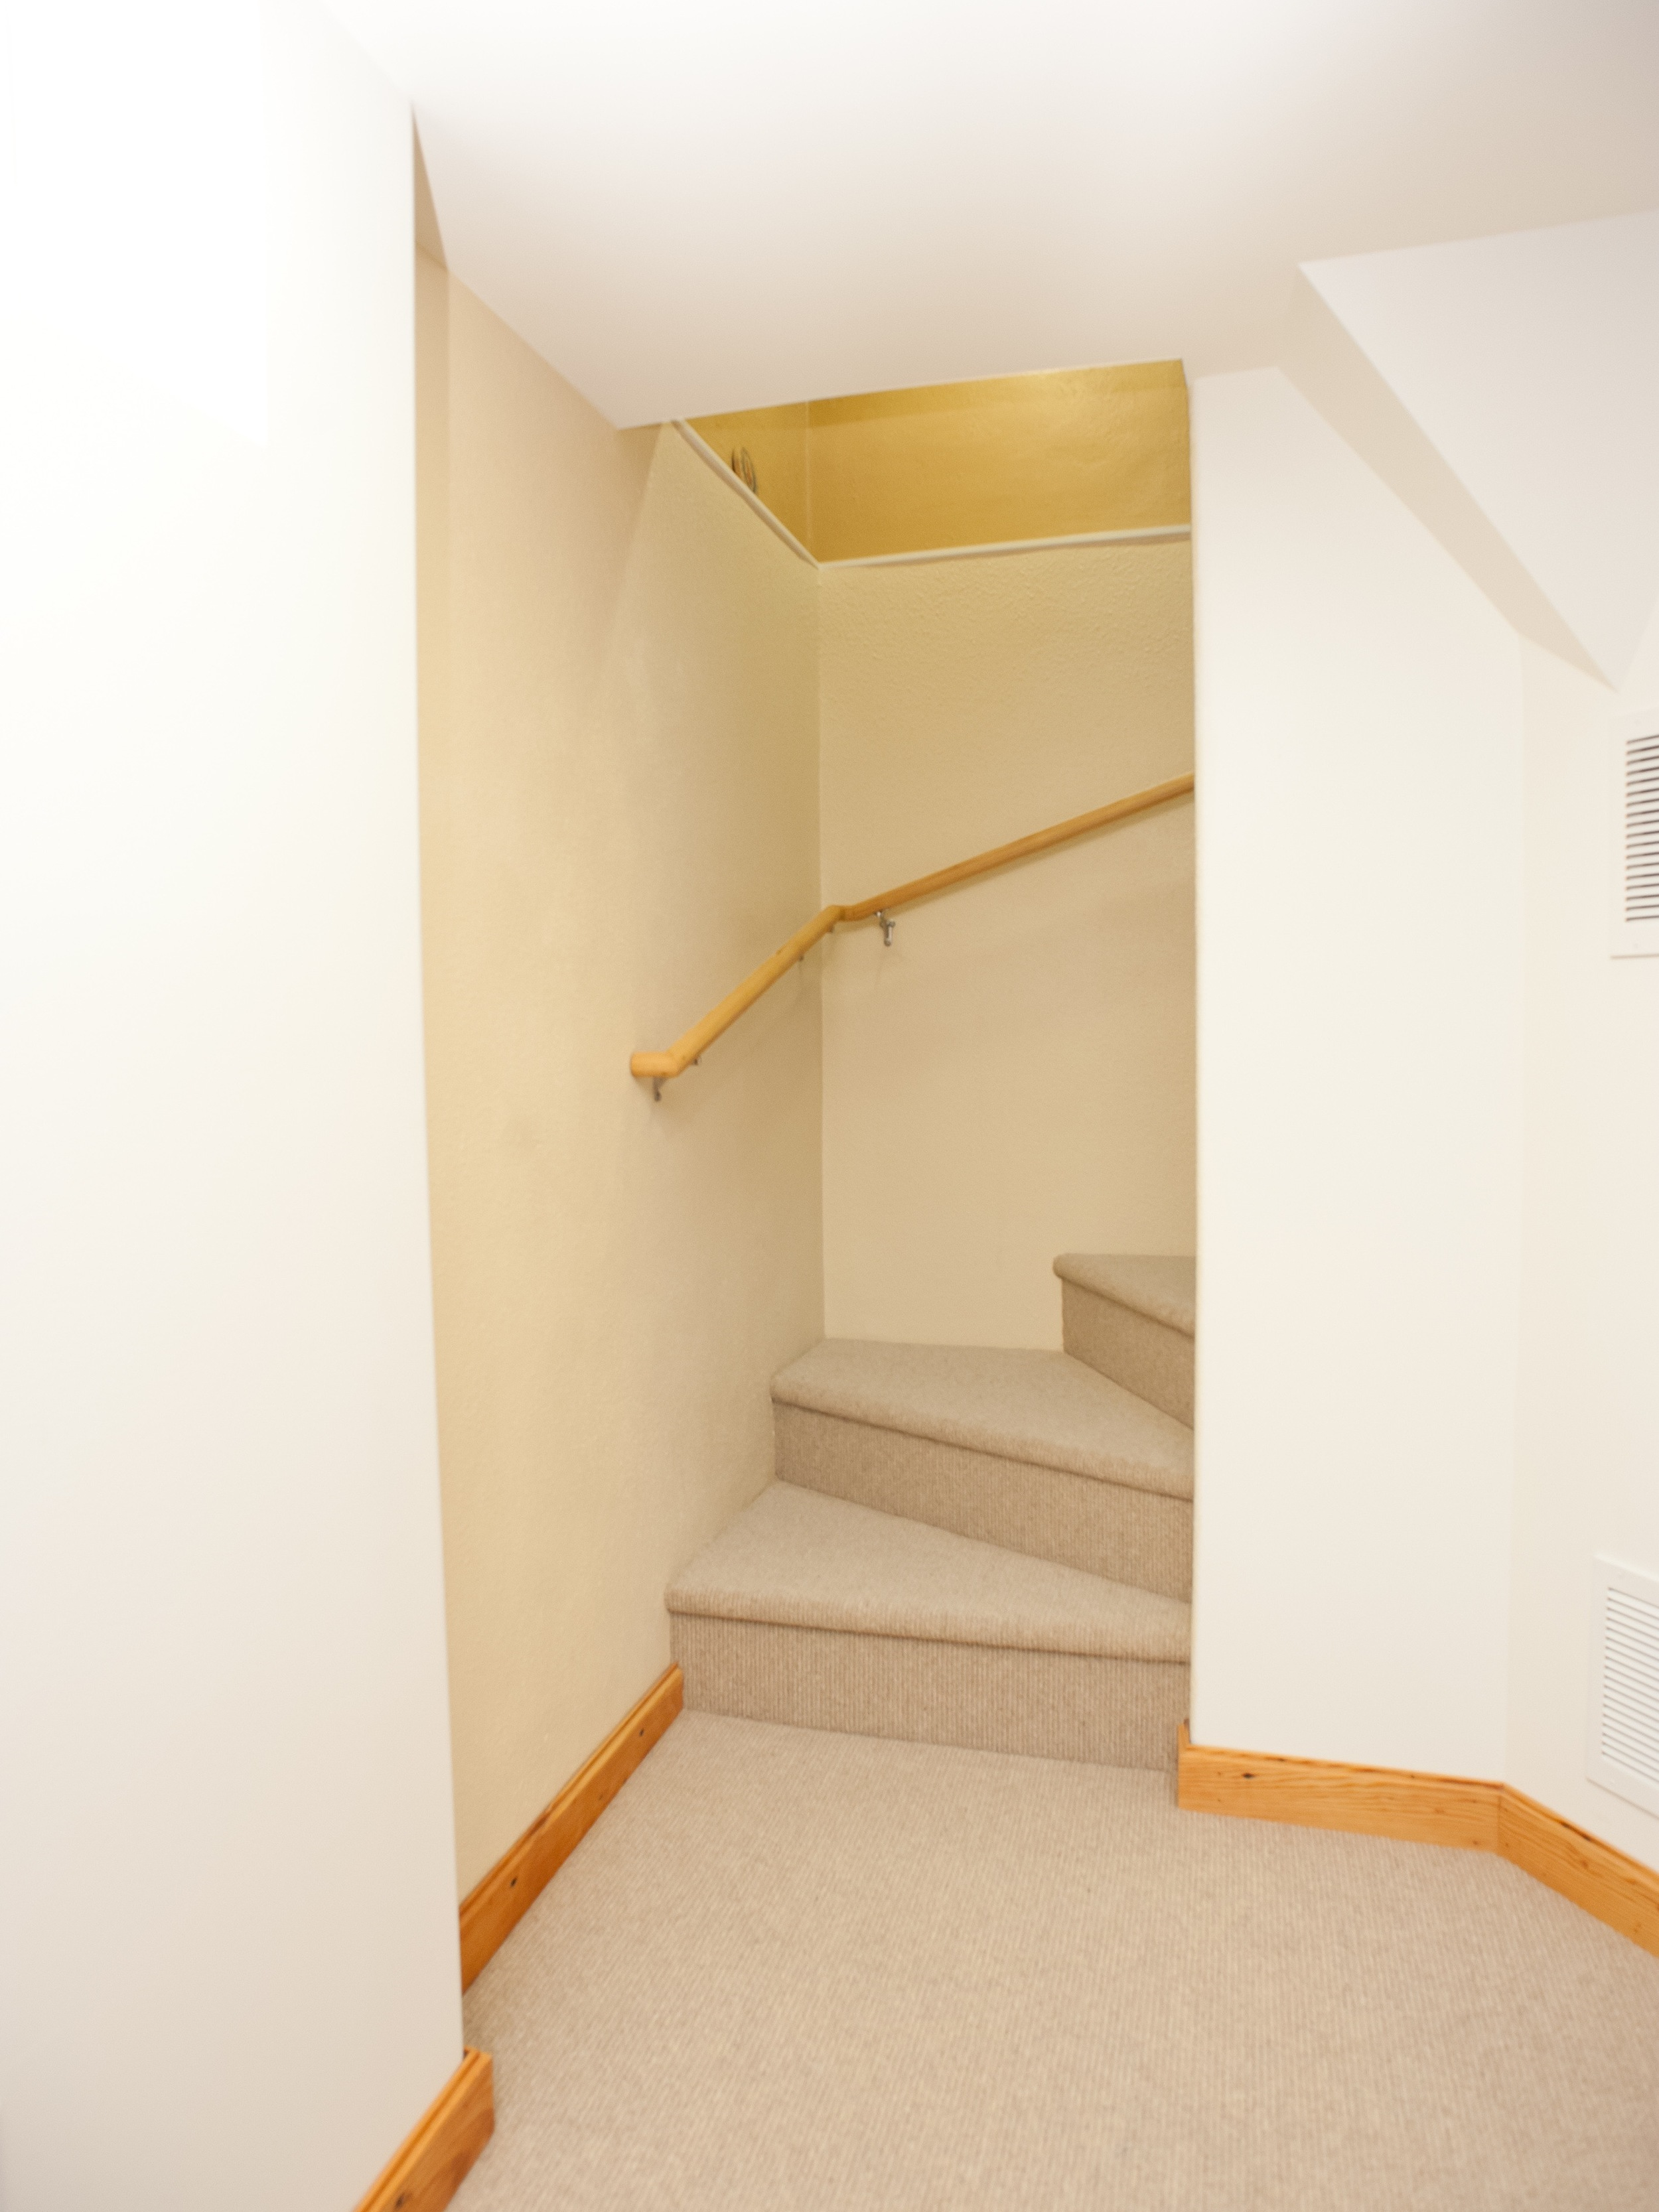 AFTER: Improved headroom, rise/run, handrail and surface (carpet added)...Compliant!